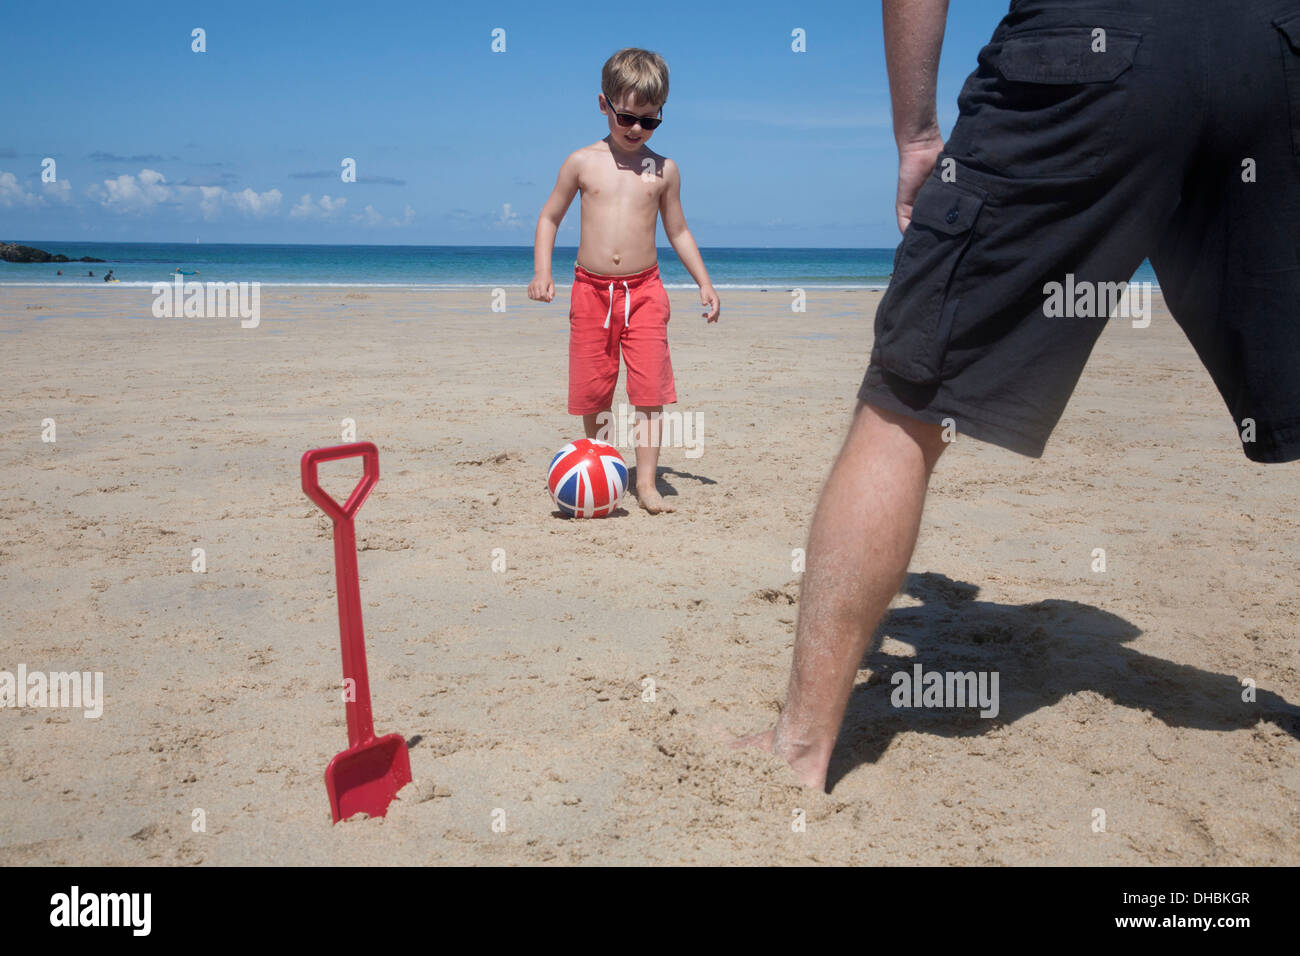 A boy playing football with a man on the sand. Father and son. A beach spade upright in the sand. - Stock Image